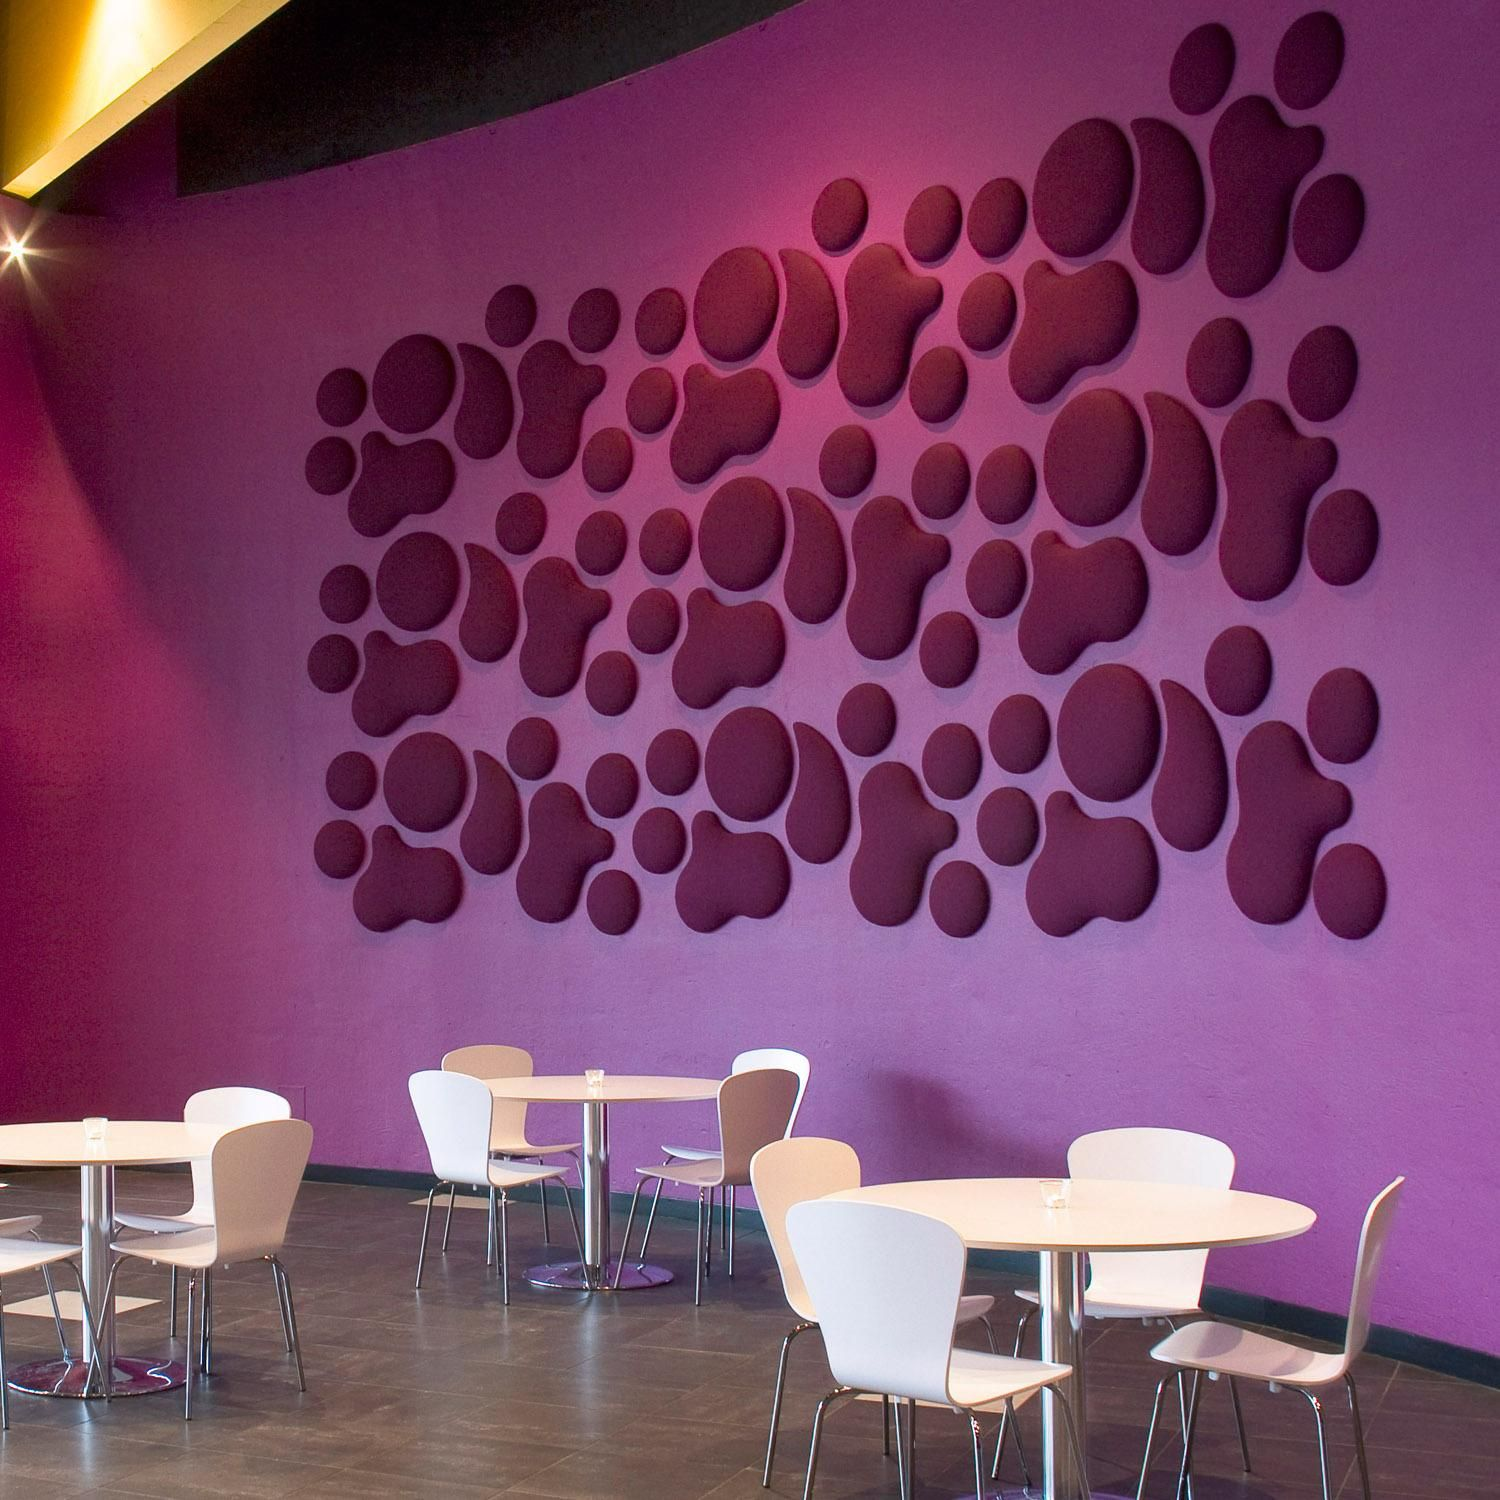 Acoustical Wall D 233 Cor In Office Environment Acoustic